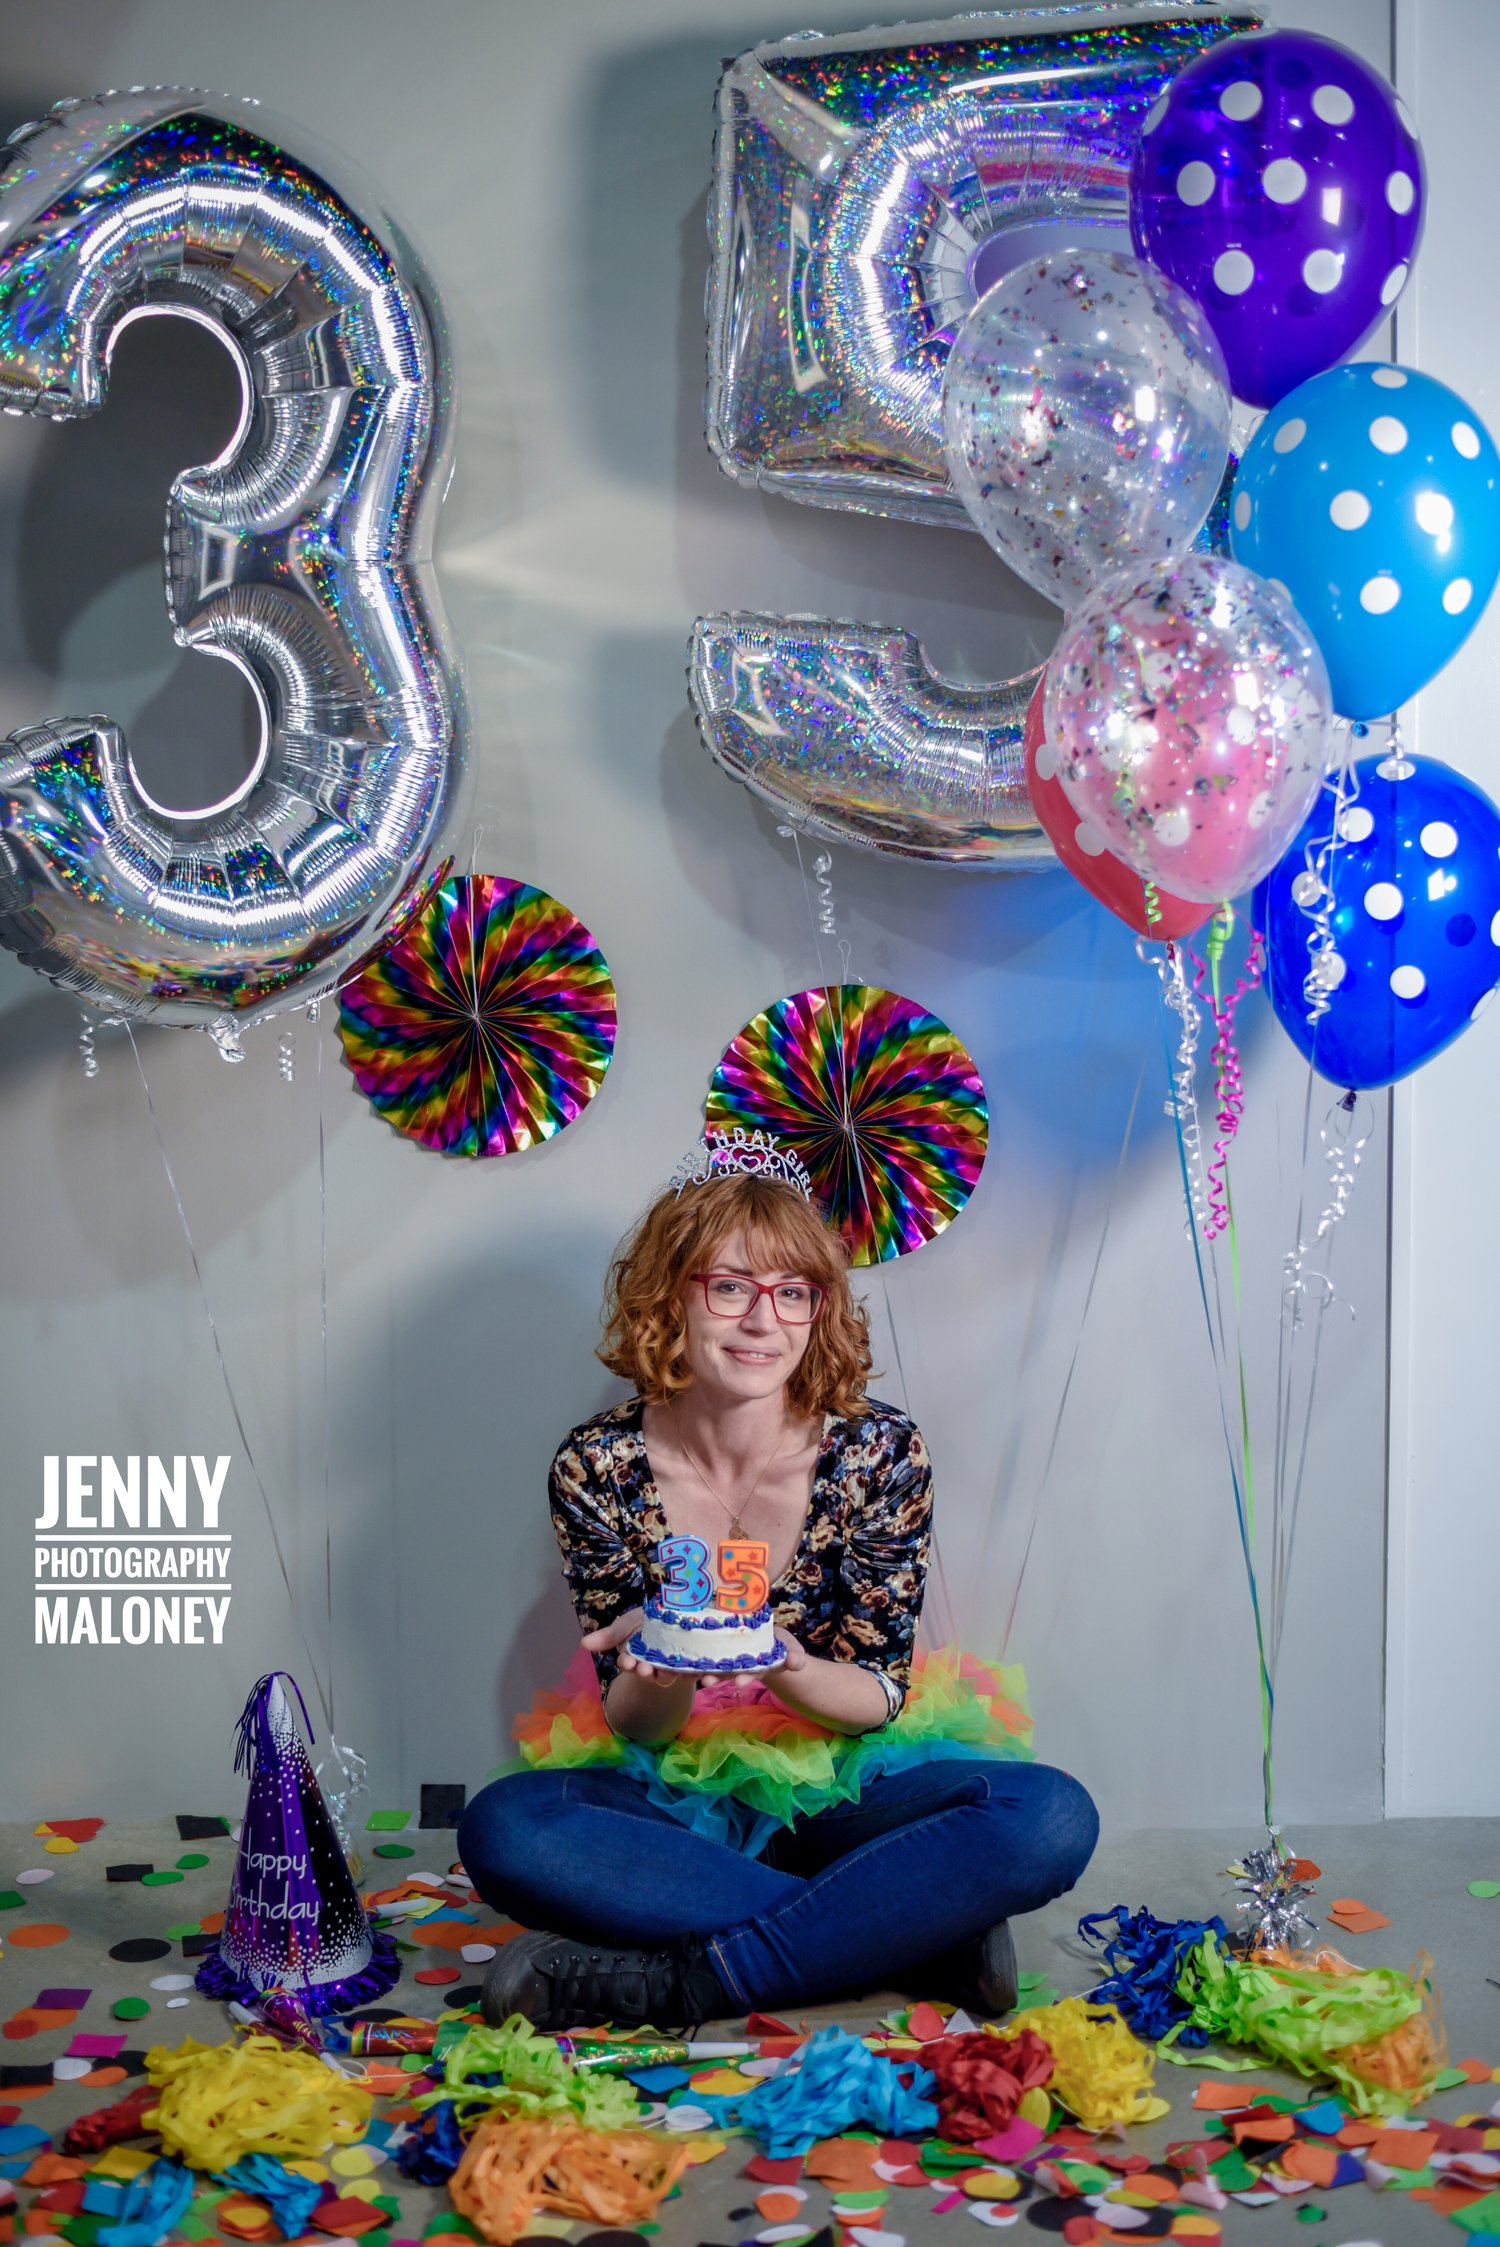 Celebrate In Style Adult Birthday Photo Shoots Are Super Trendy And For Good Reason Jenny Maloney Photography Search, discover and share your favorite 30th birthday gifs. jenny maloney photography